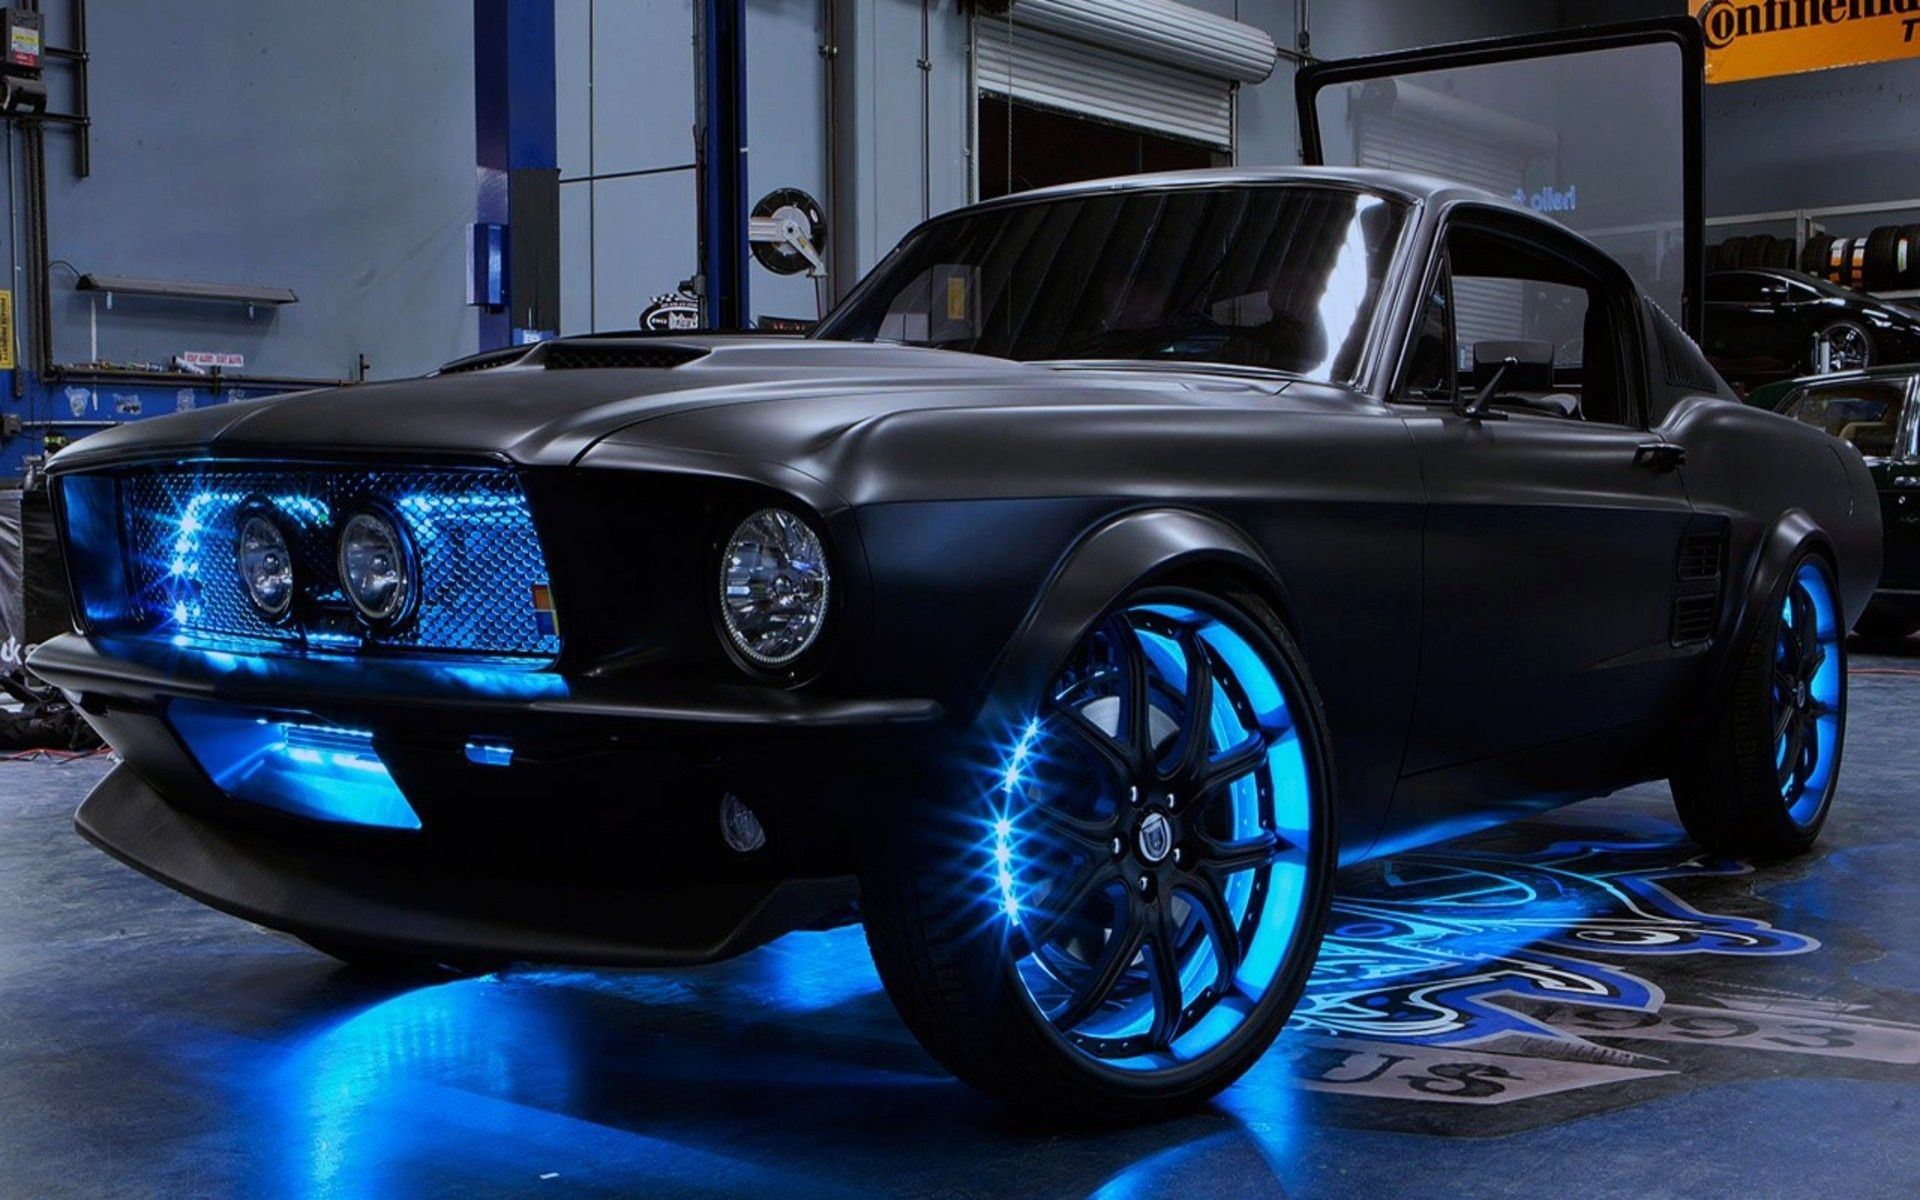 Ford Mustang with Neon Lights   Featured Concept Cars   Pinterest ...